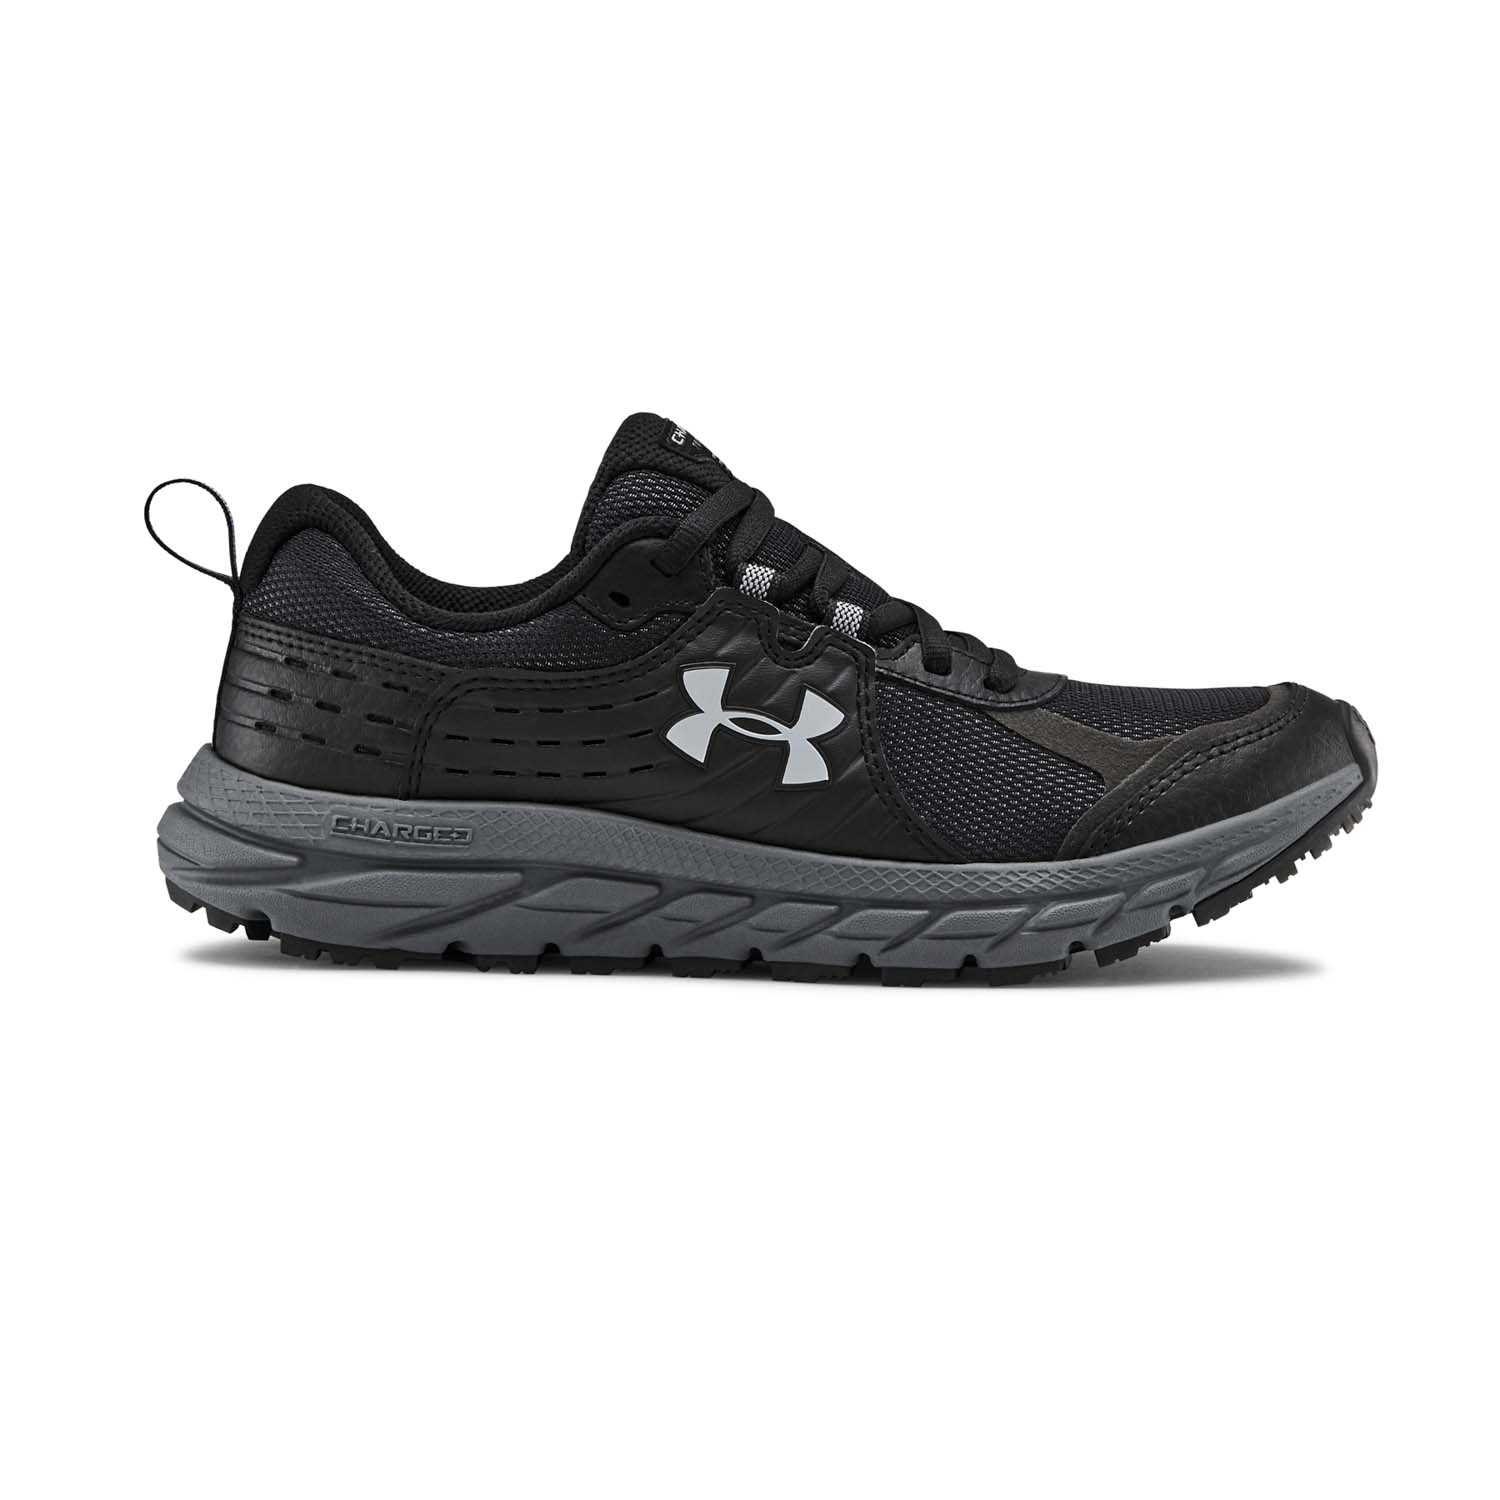 Under Armour Women's Charged Toccoa 2 Hiking Shoe